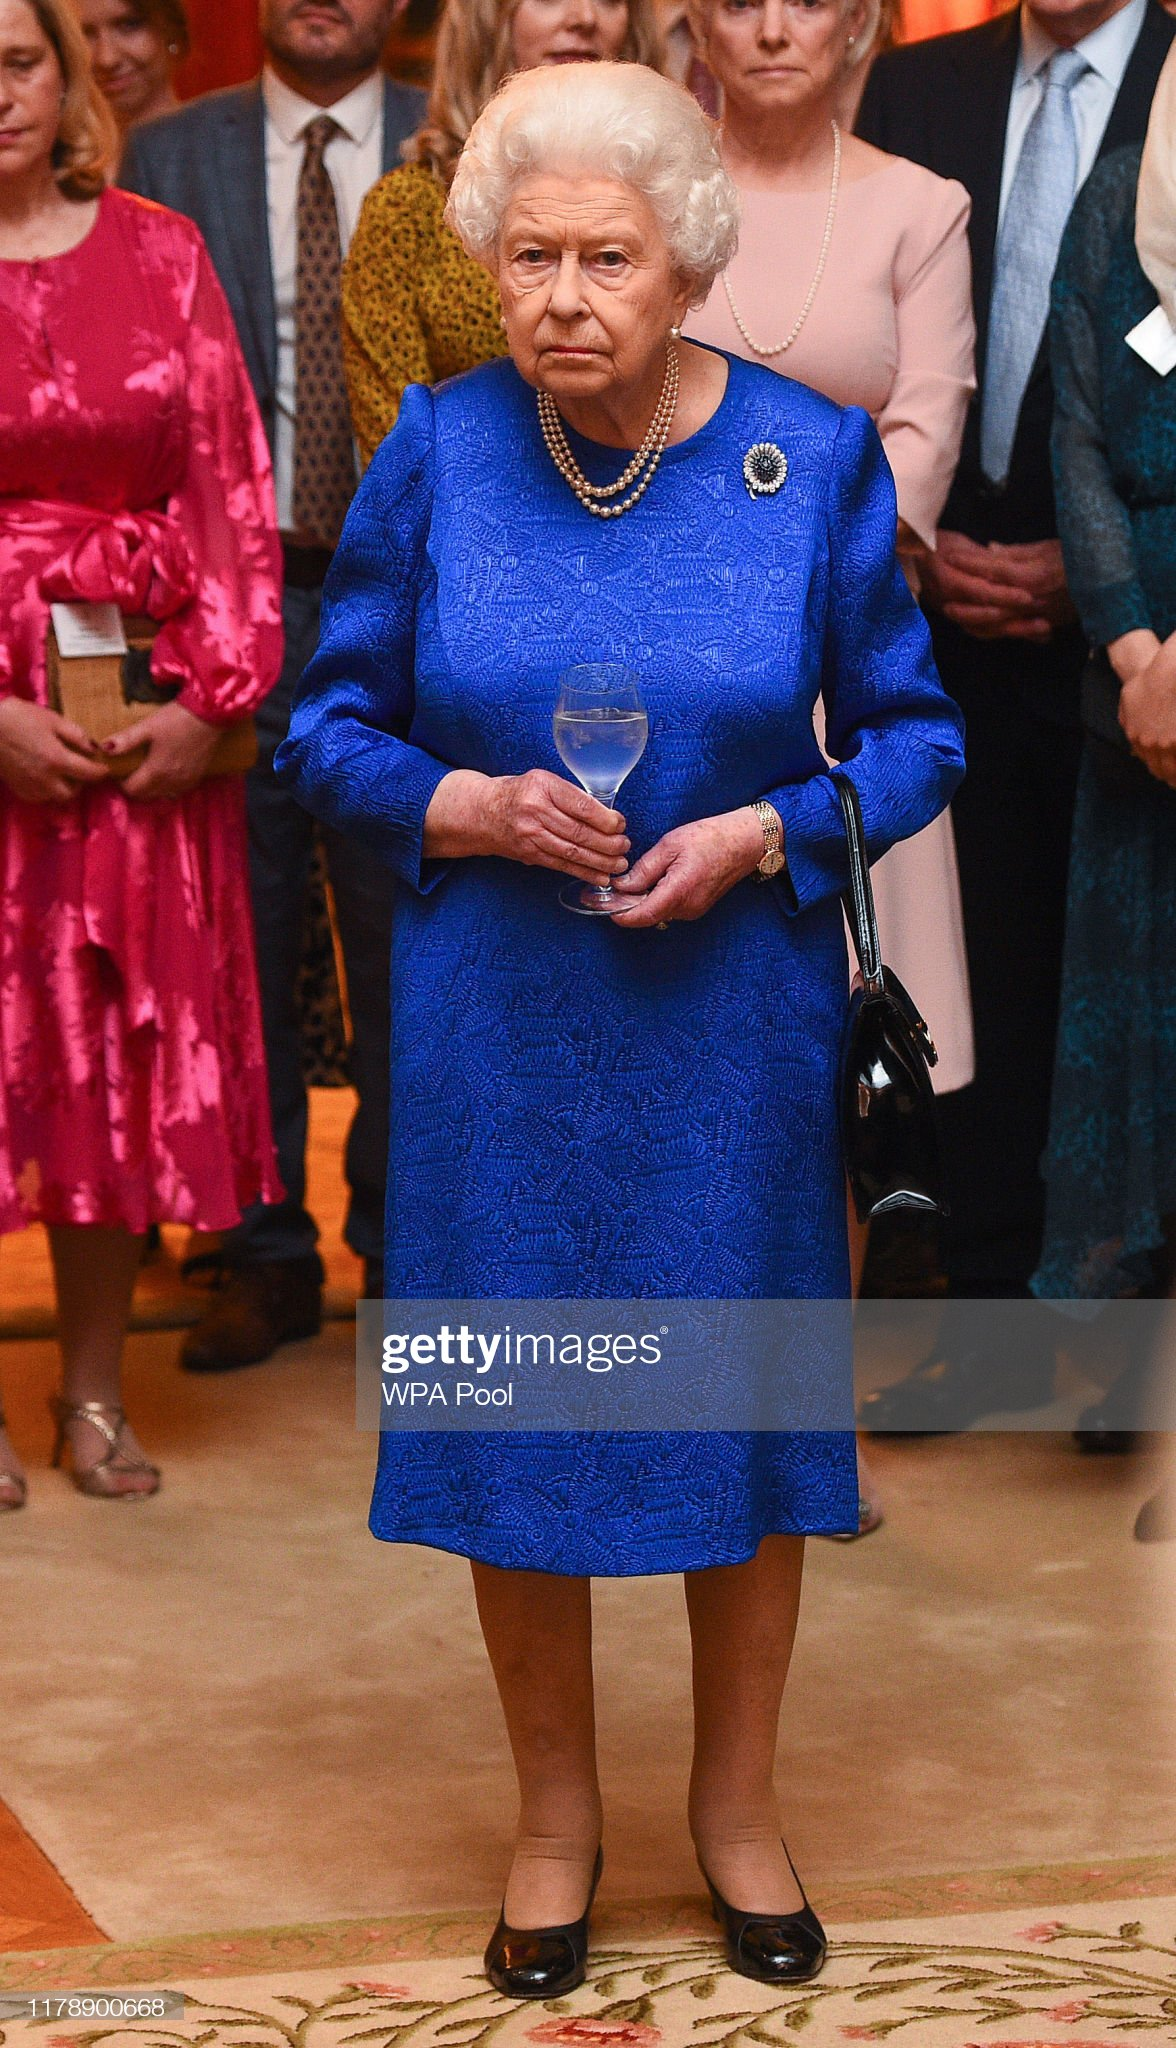 The Queen Hosts A Reception To Celebrate The Work Of The Queen Elizabeth Diamond Jubilee Trust : News Photo